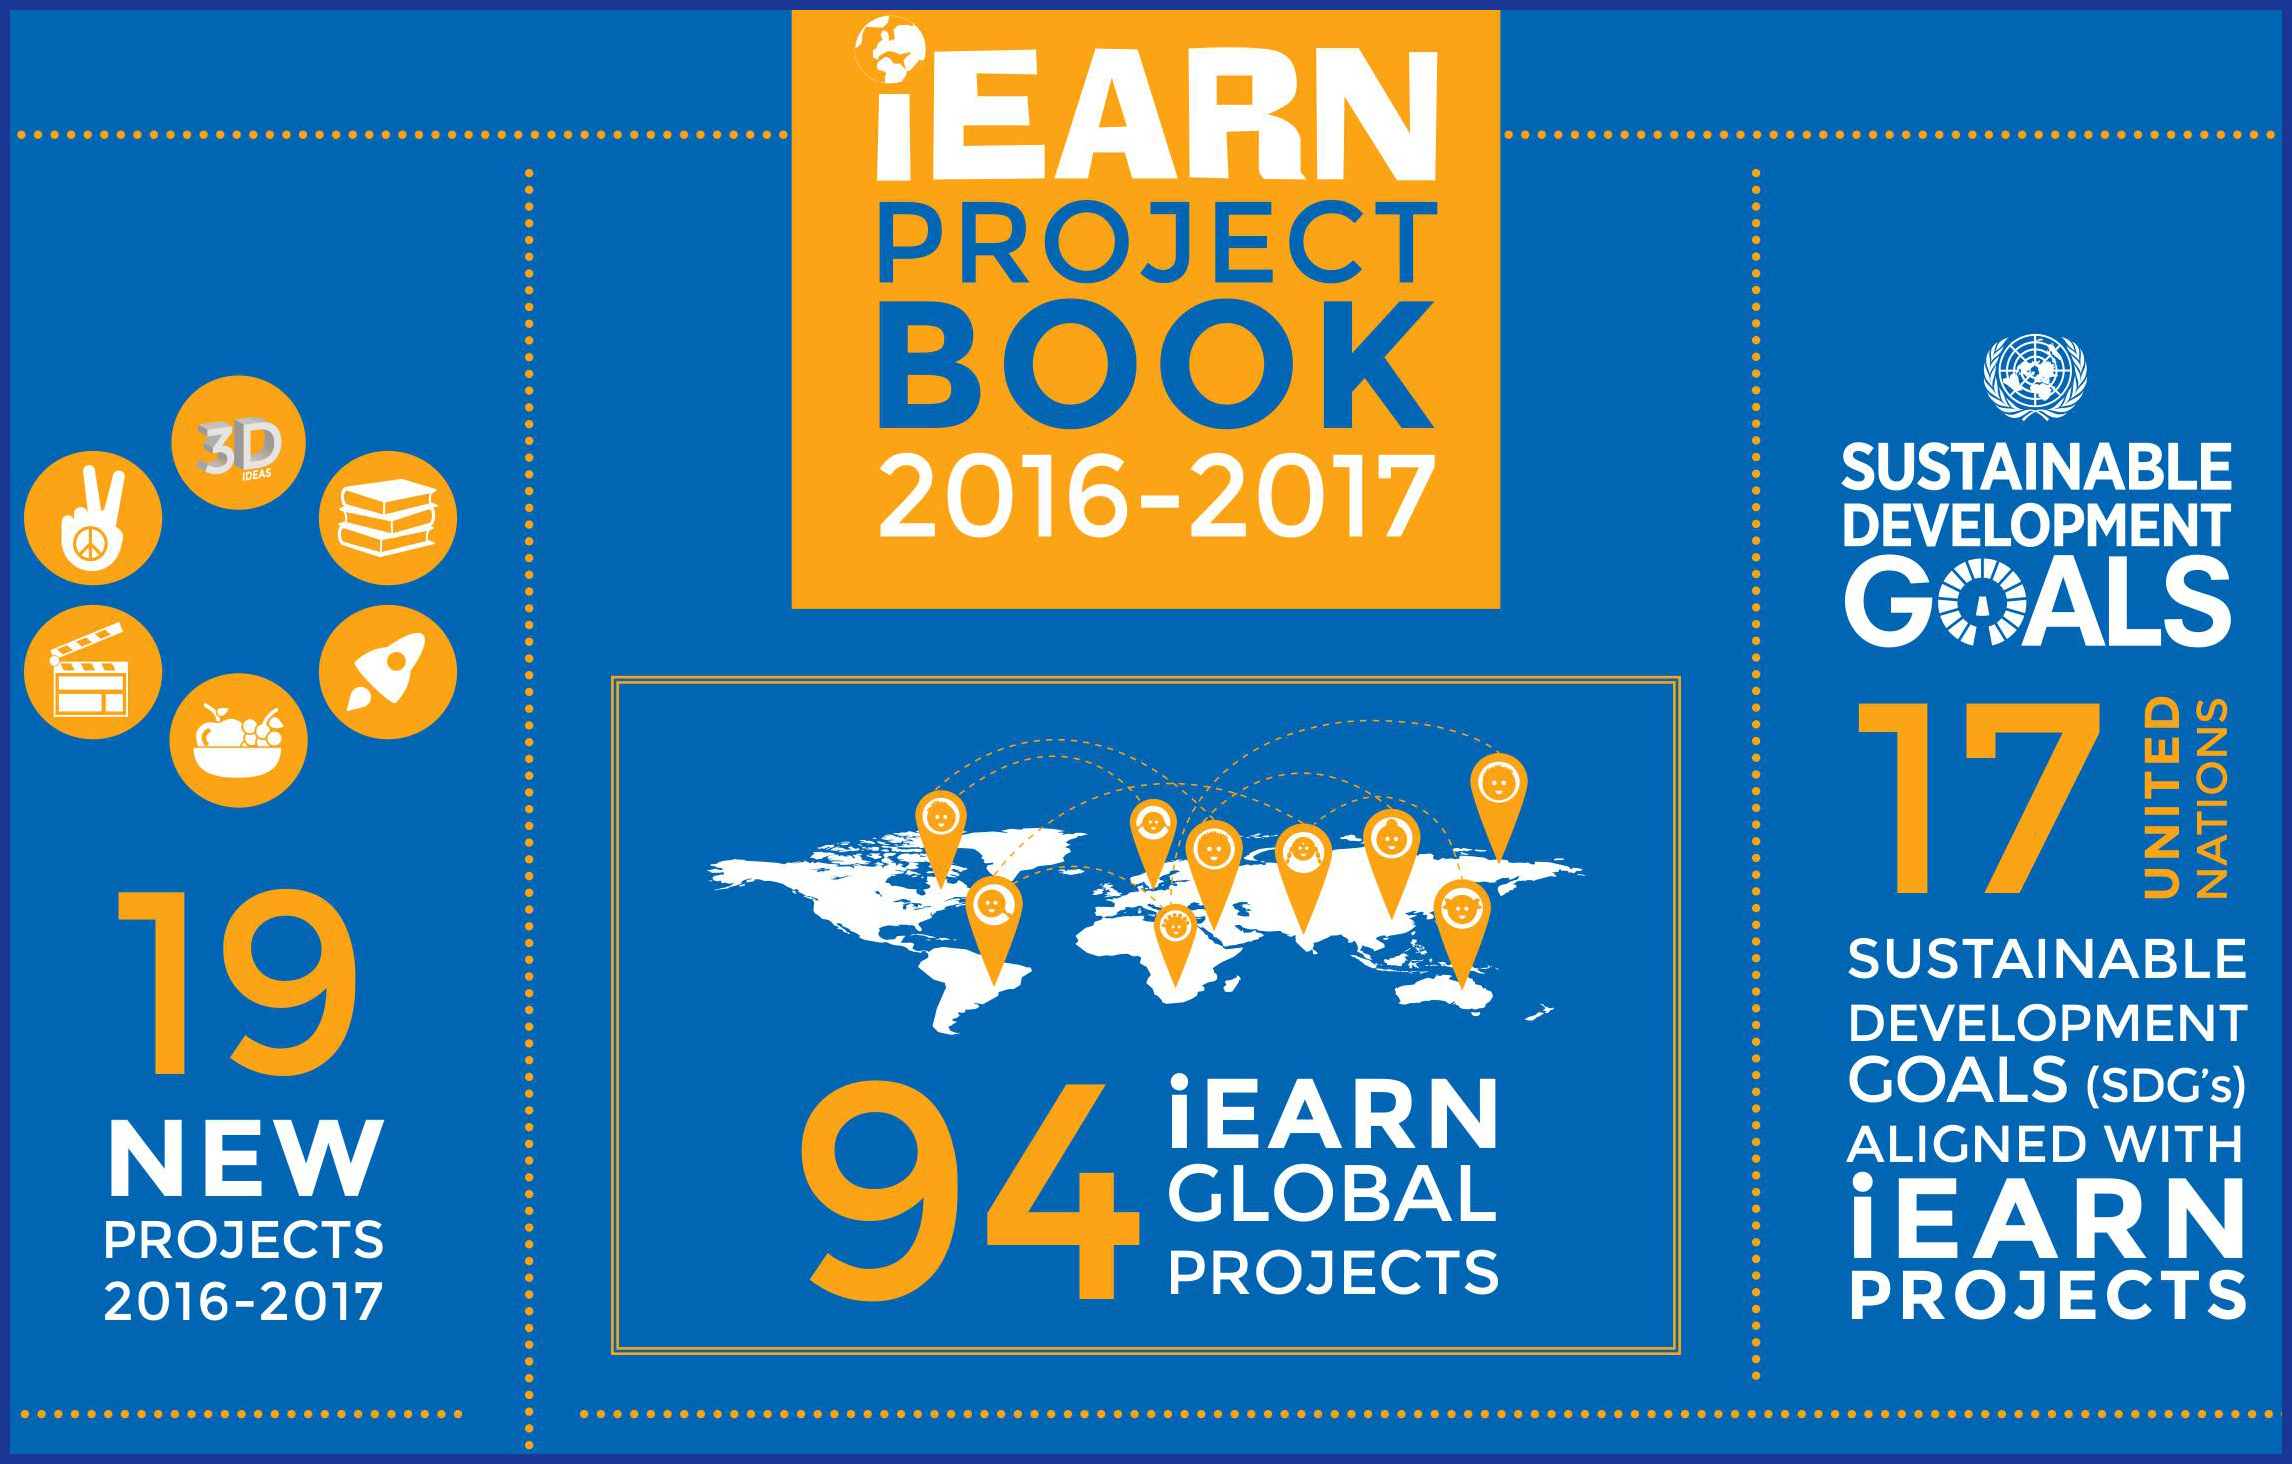 iEARN Project Book